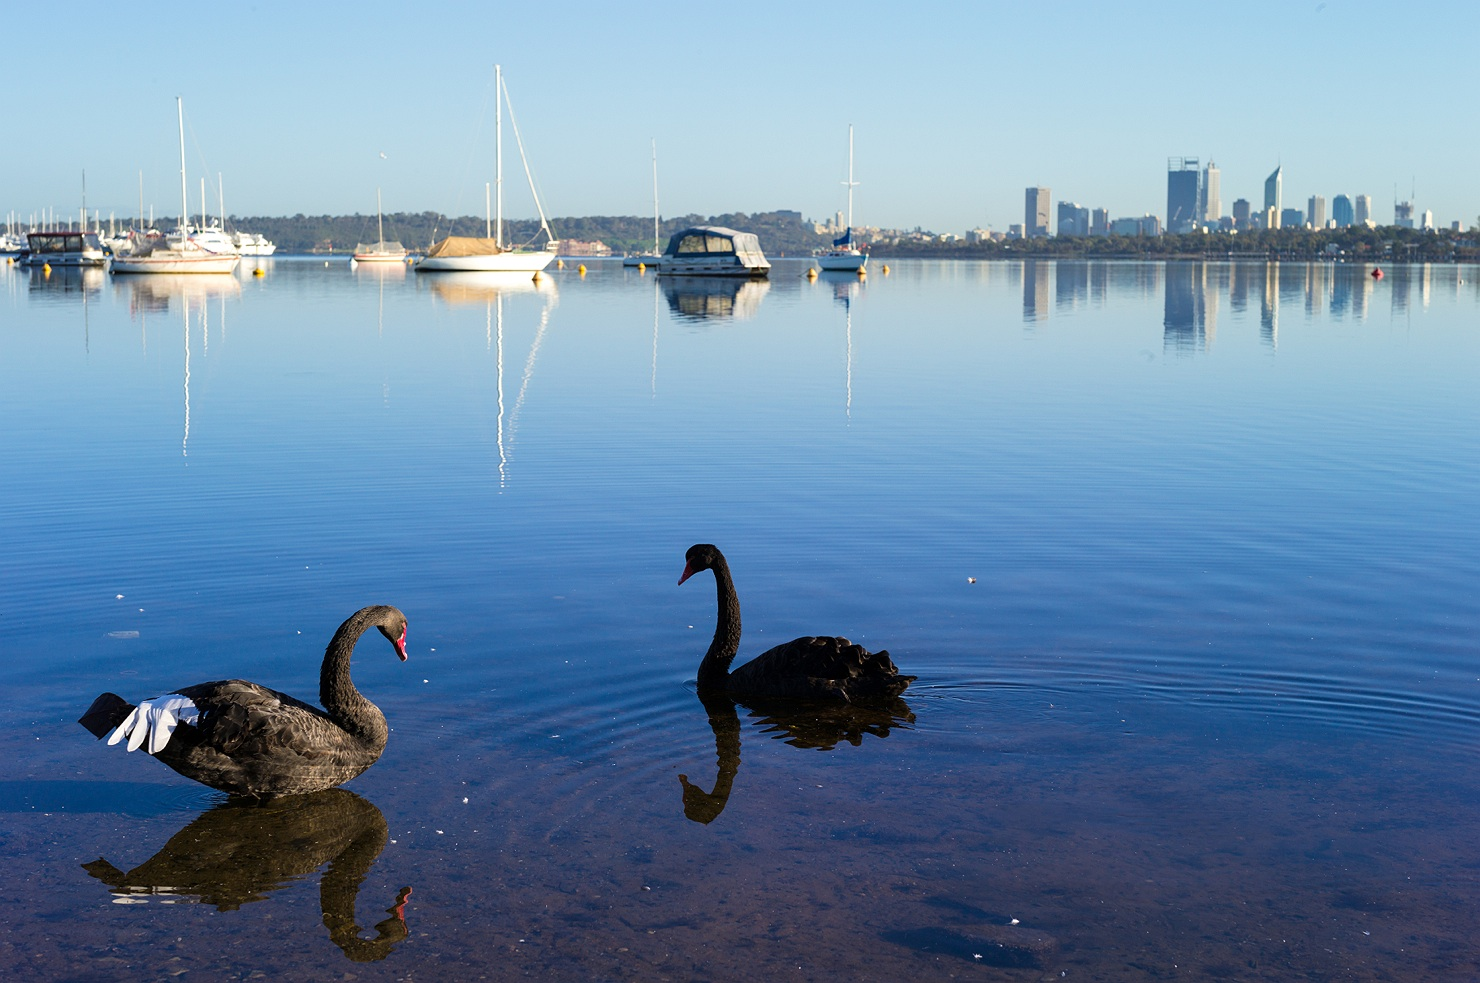 swan river men It's called 'the swan river'  hopefully, its upkeep is maintained and that wealthy business men on their toy yachts don't go polluting something so precious.